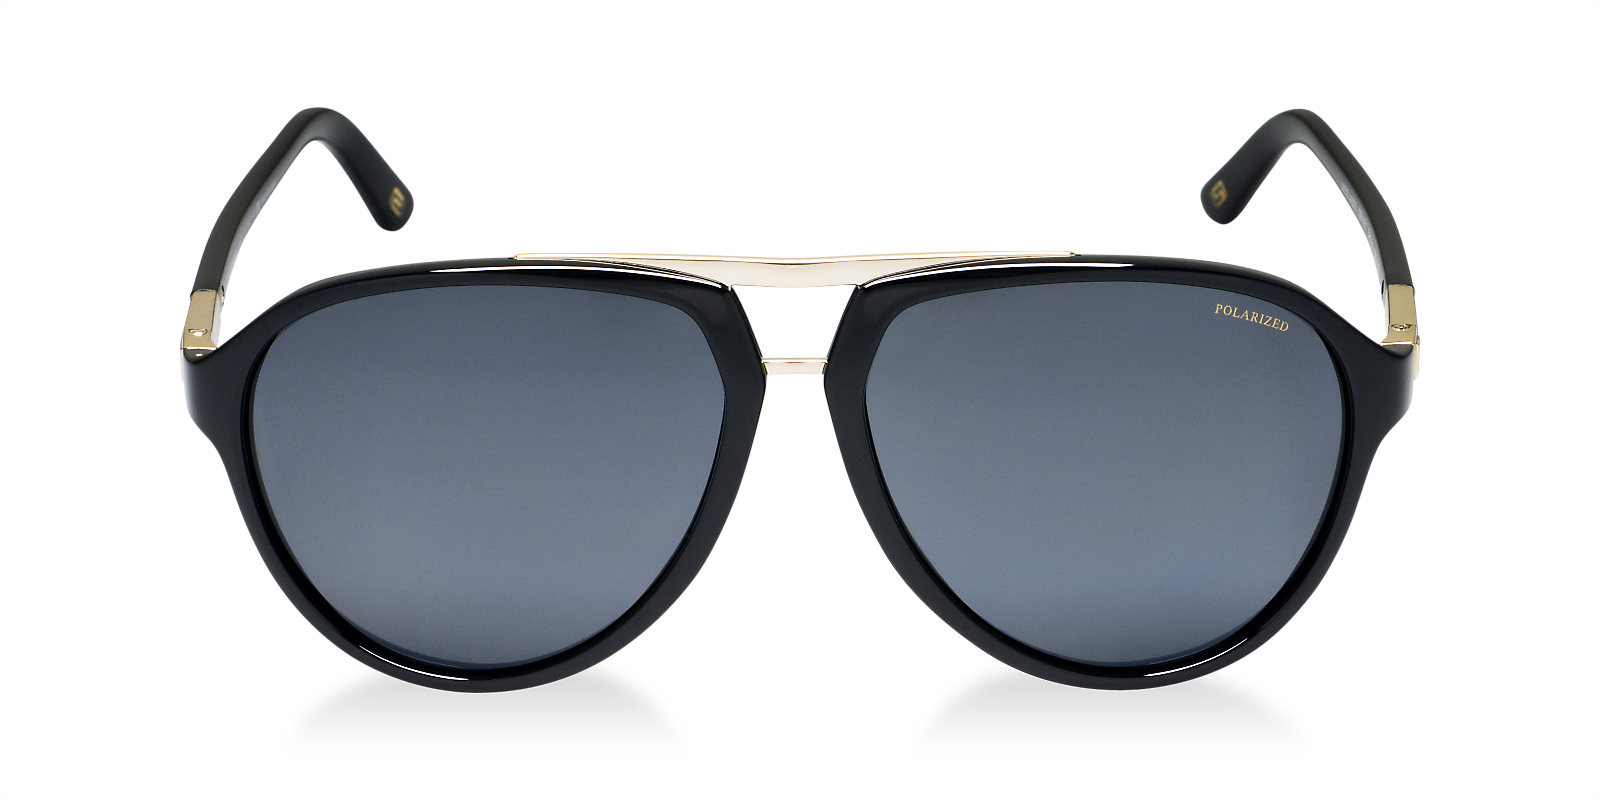 Sunglasses Png Hd PNG Image